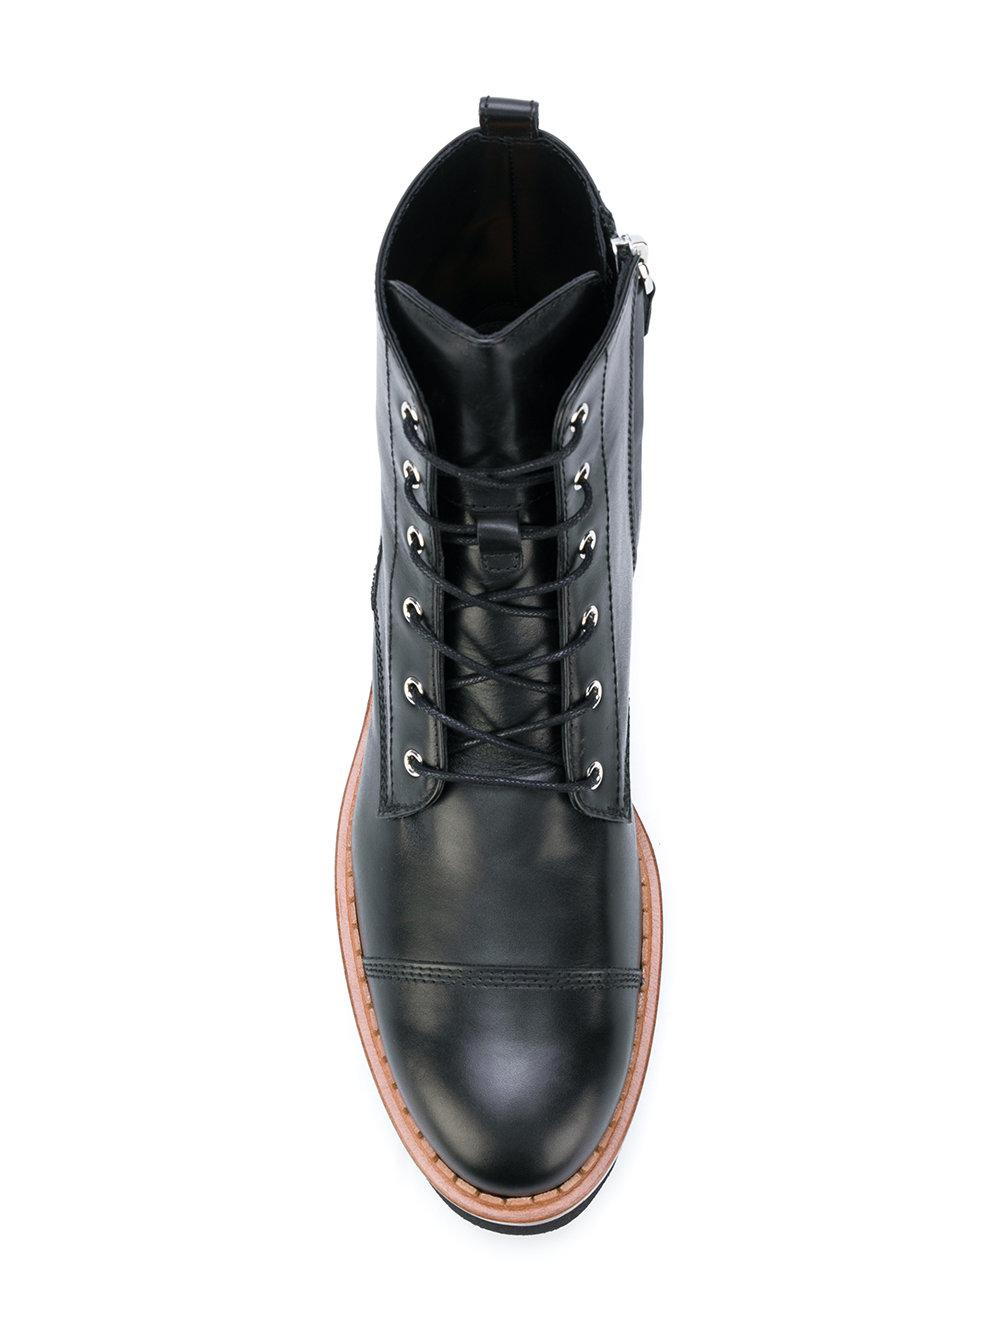 Tod's Leather Lace-up Platform Boots in Black